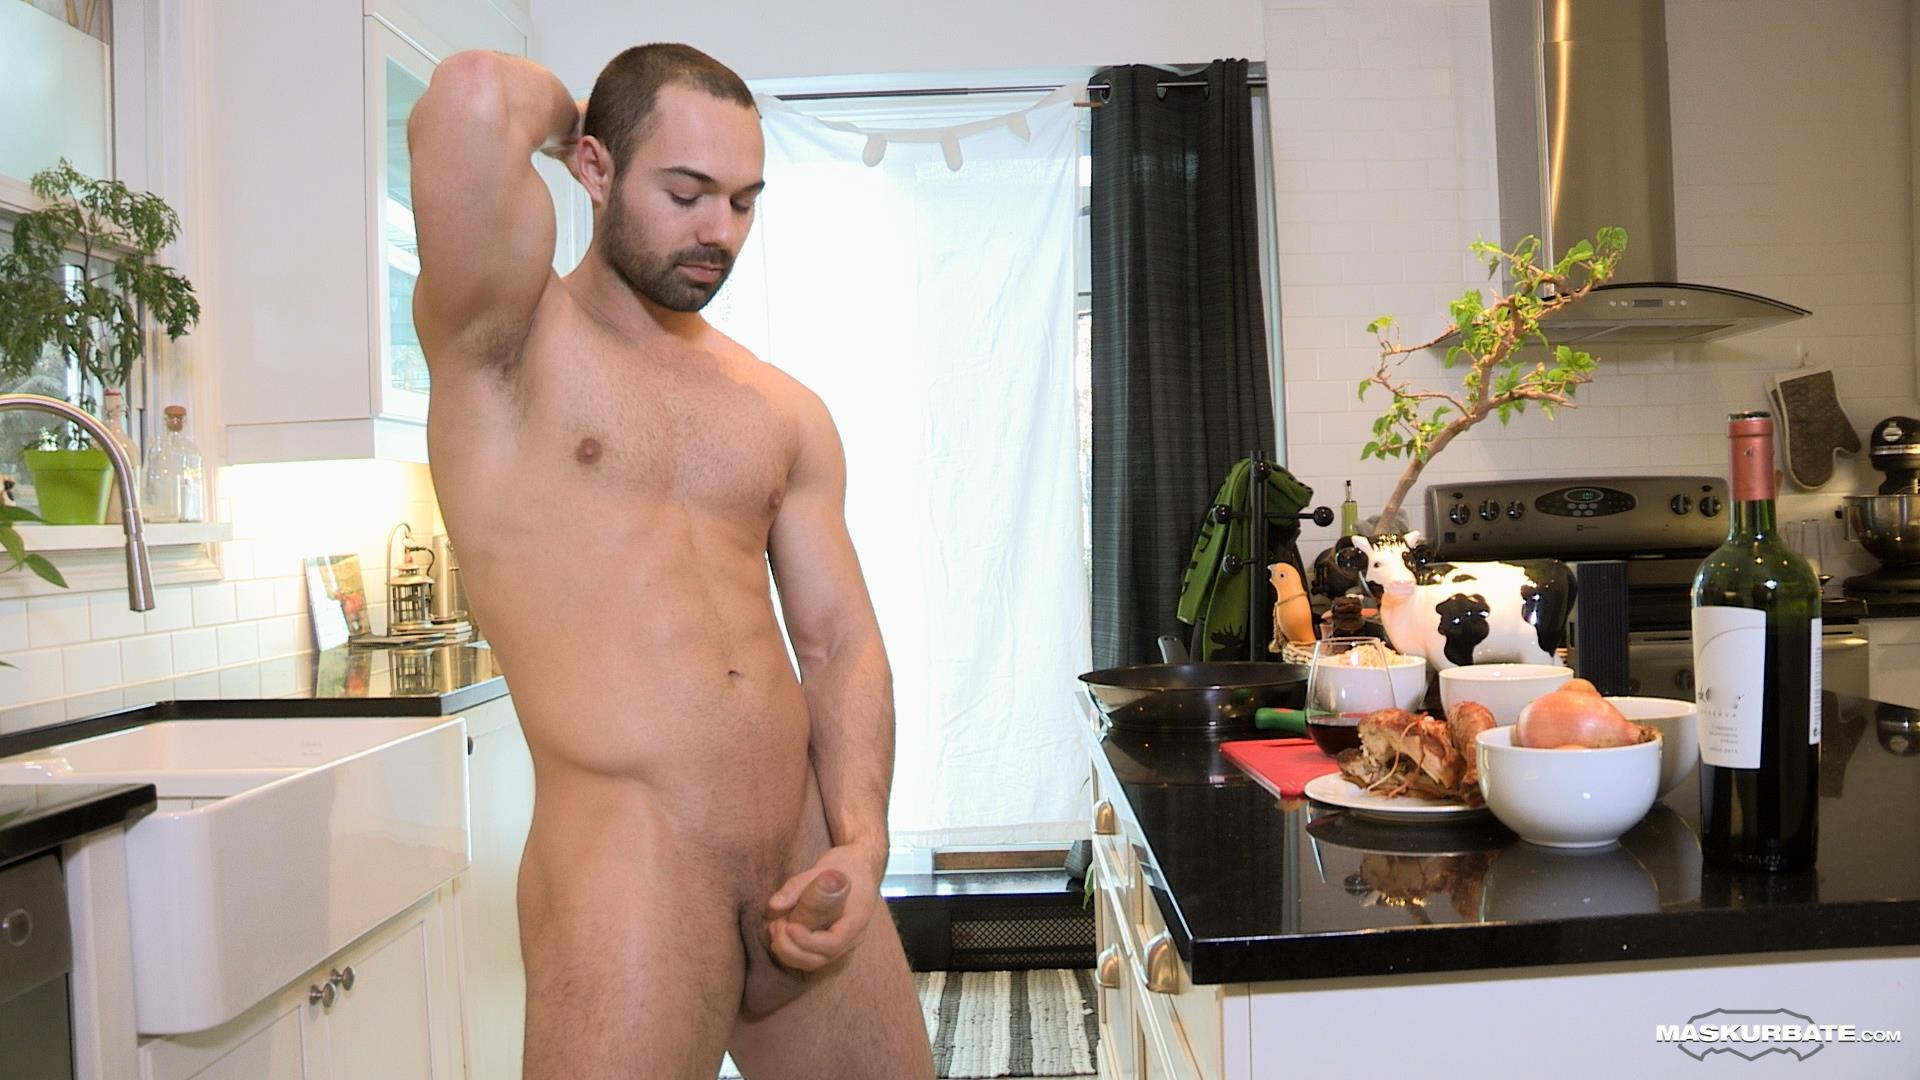 Maskurbate-Muscle-Hunk-With-A-Big-Uncut-Cock-Jerking-Off-Amateur-Gay-Porn-04 The Naked Chef Jerks His Big Uncut Cock In The Kitchen